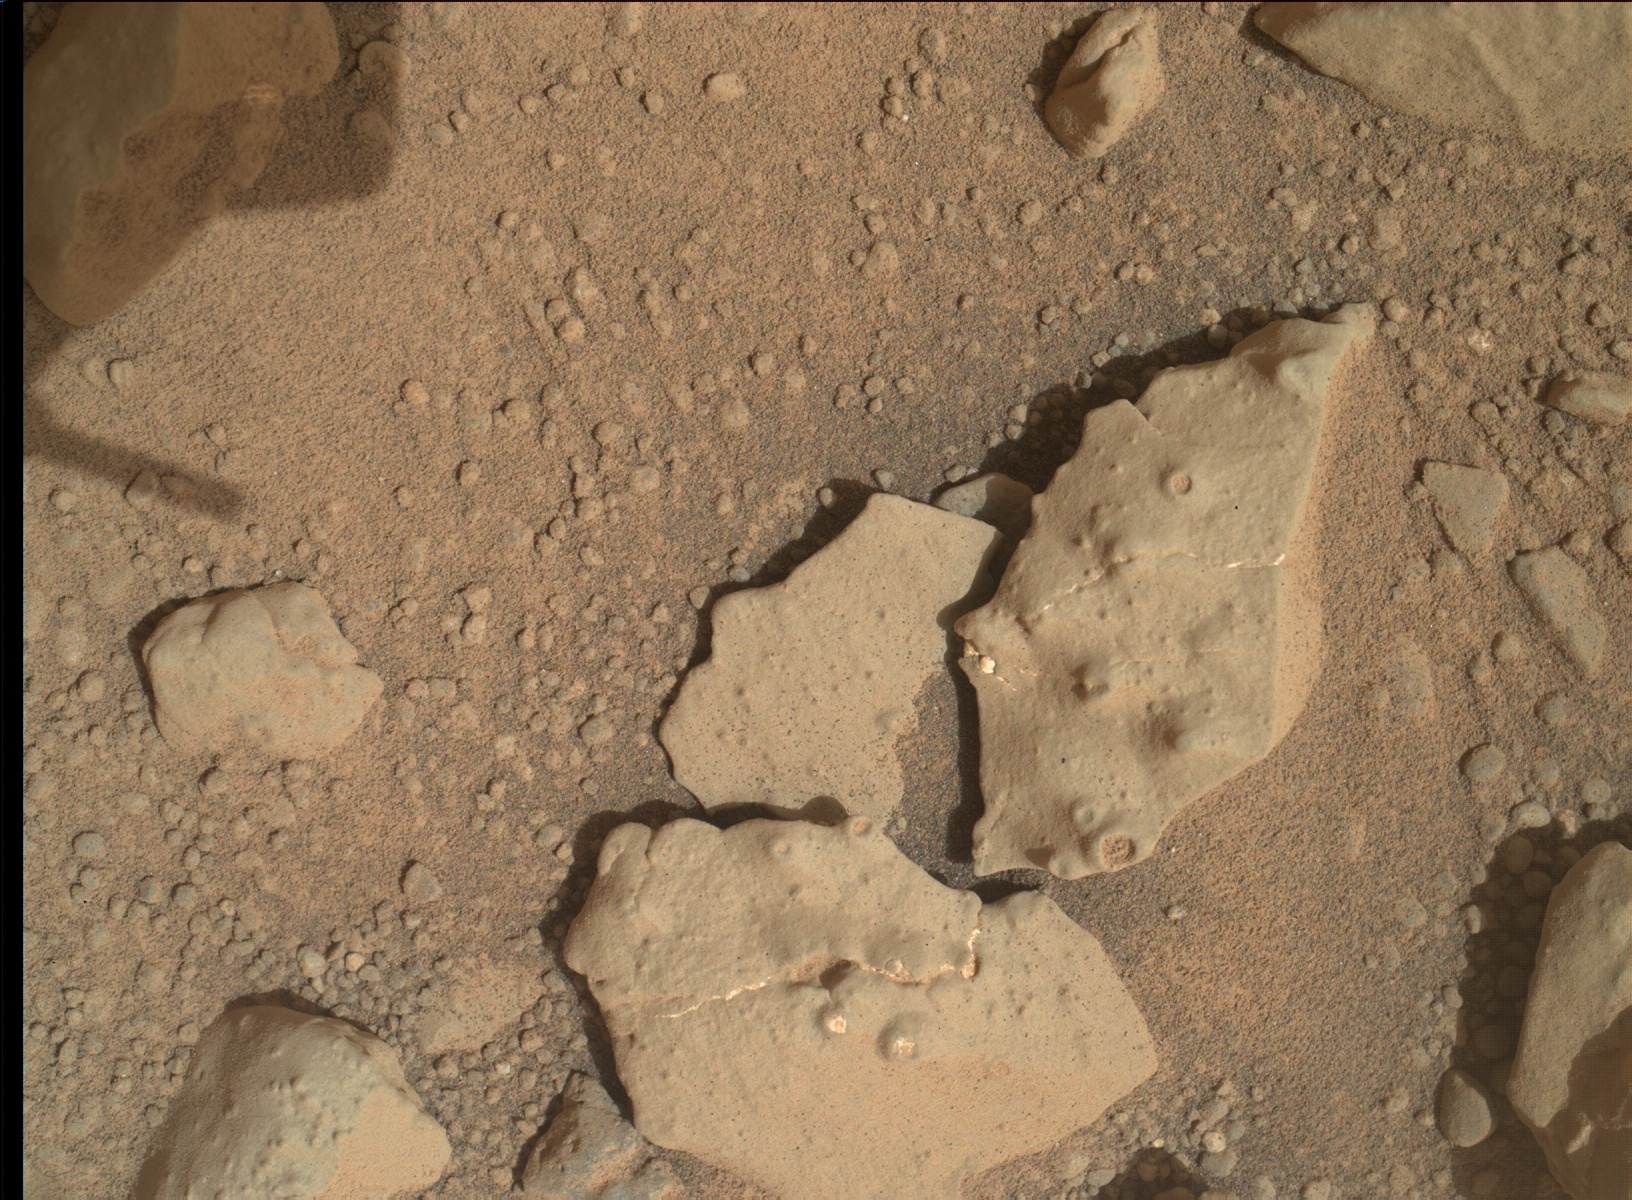 Nasa's Mars rover Curiosity acquired this image using its Mars Hand Lens Imager (MAHLI) on Sol 159